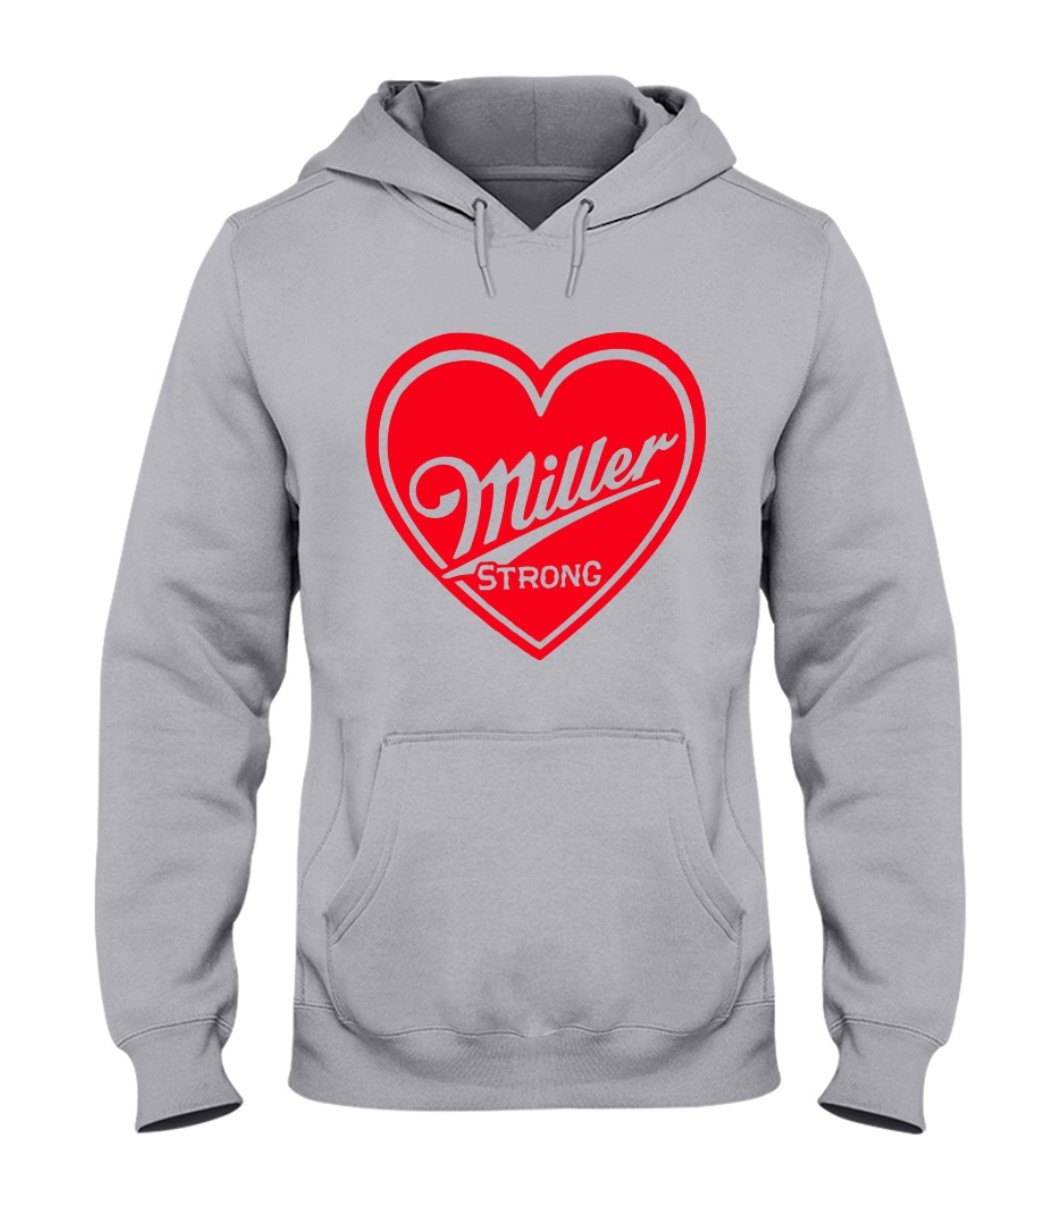 Miller Strong Hoodie Shirts